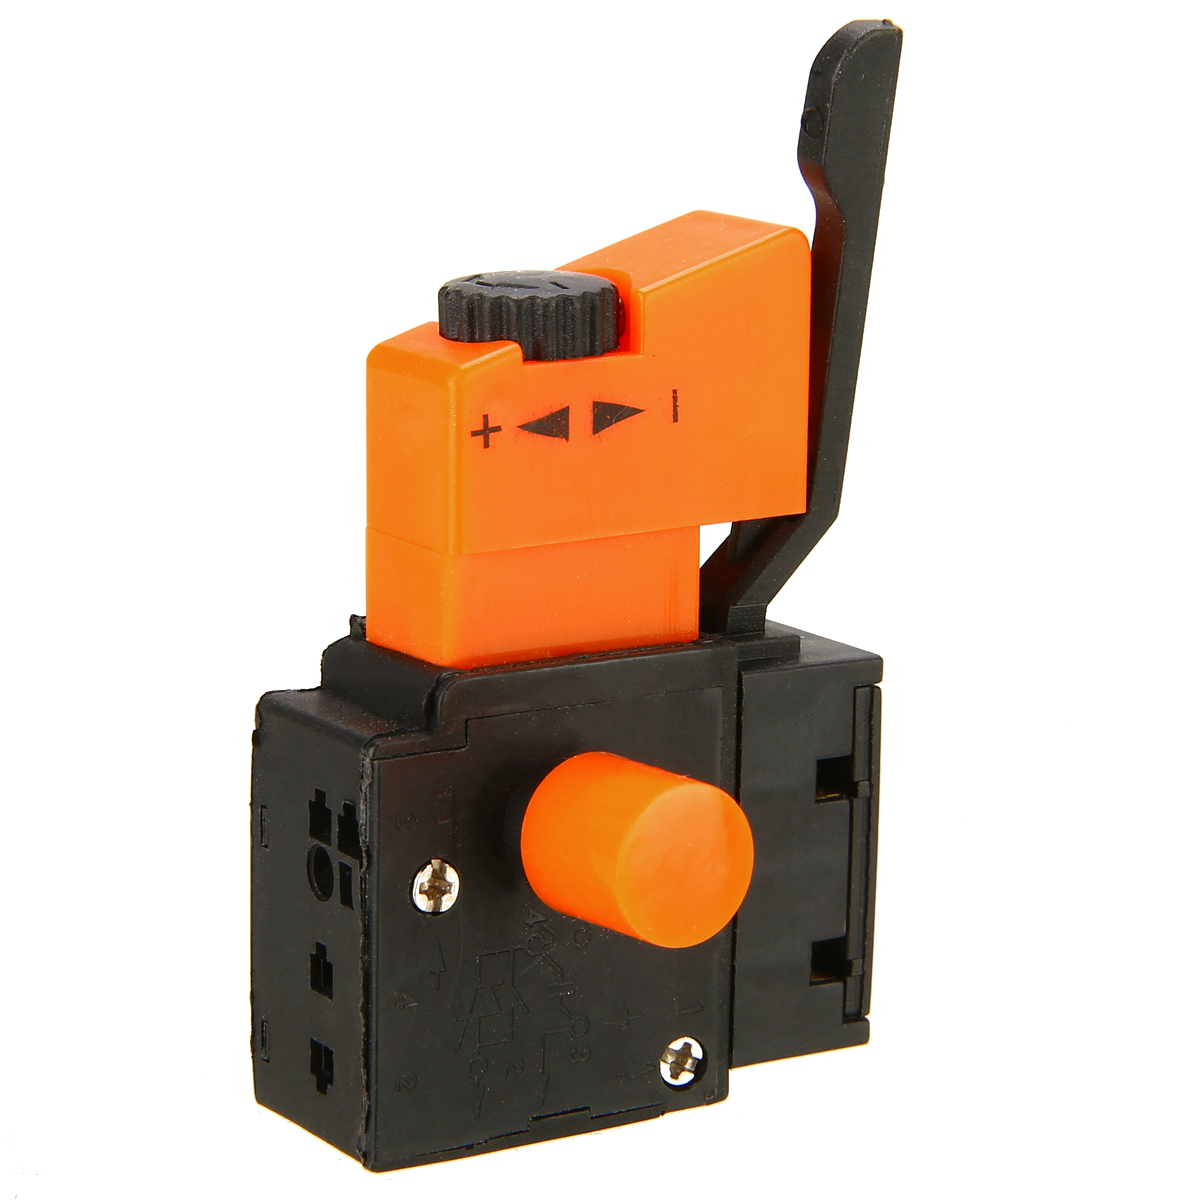 New AC 250V Adjustable Speed Switch <font><b>FA2</b></font>-<font><b>4</b></font>/<font><b>1BEK</b></font> Lock on Power Speed Control Trigger Switch For Electric Hand Drill image